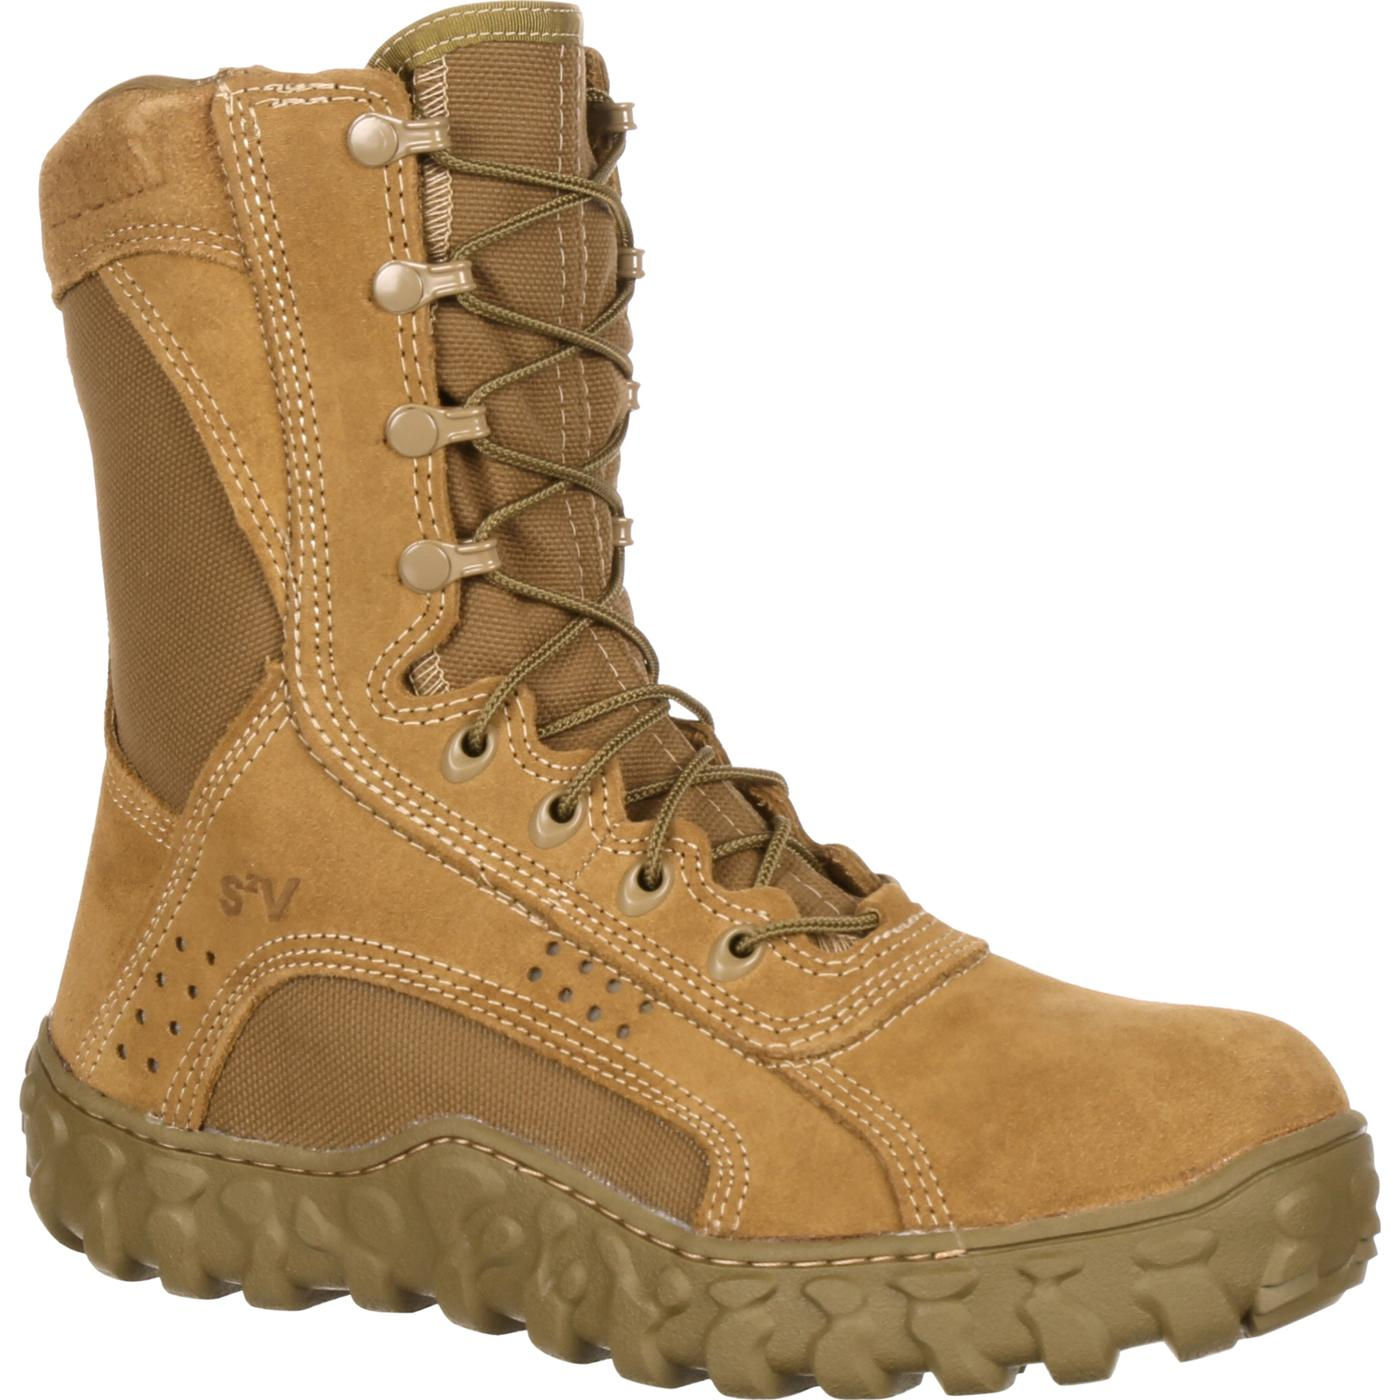 3ca748da172 Rocky S2V Tactical Military Boot